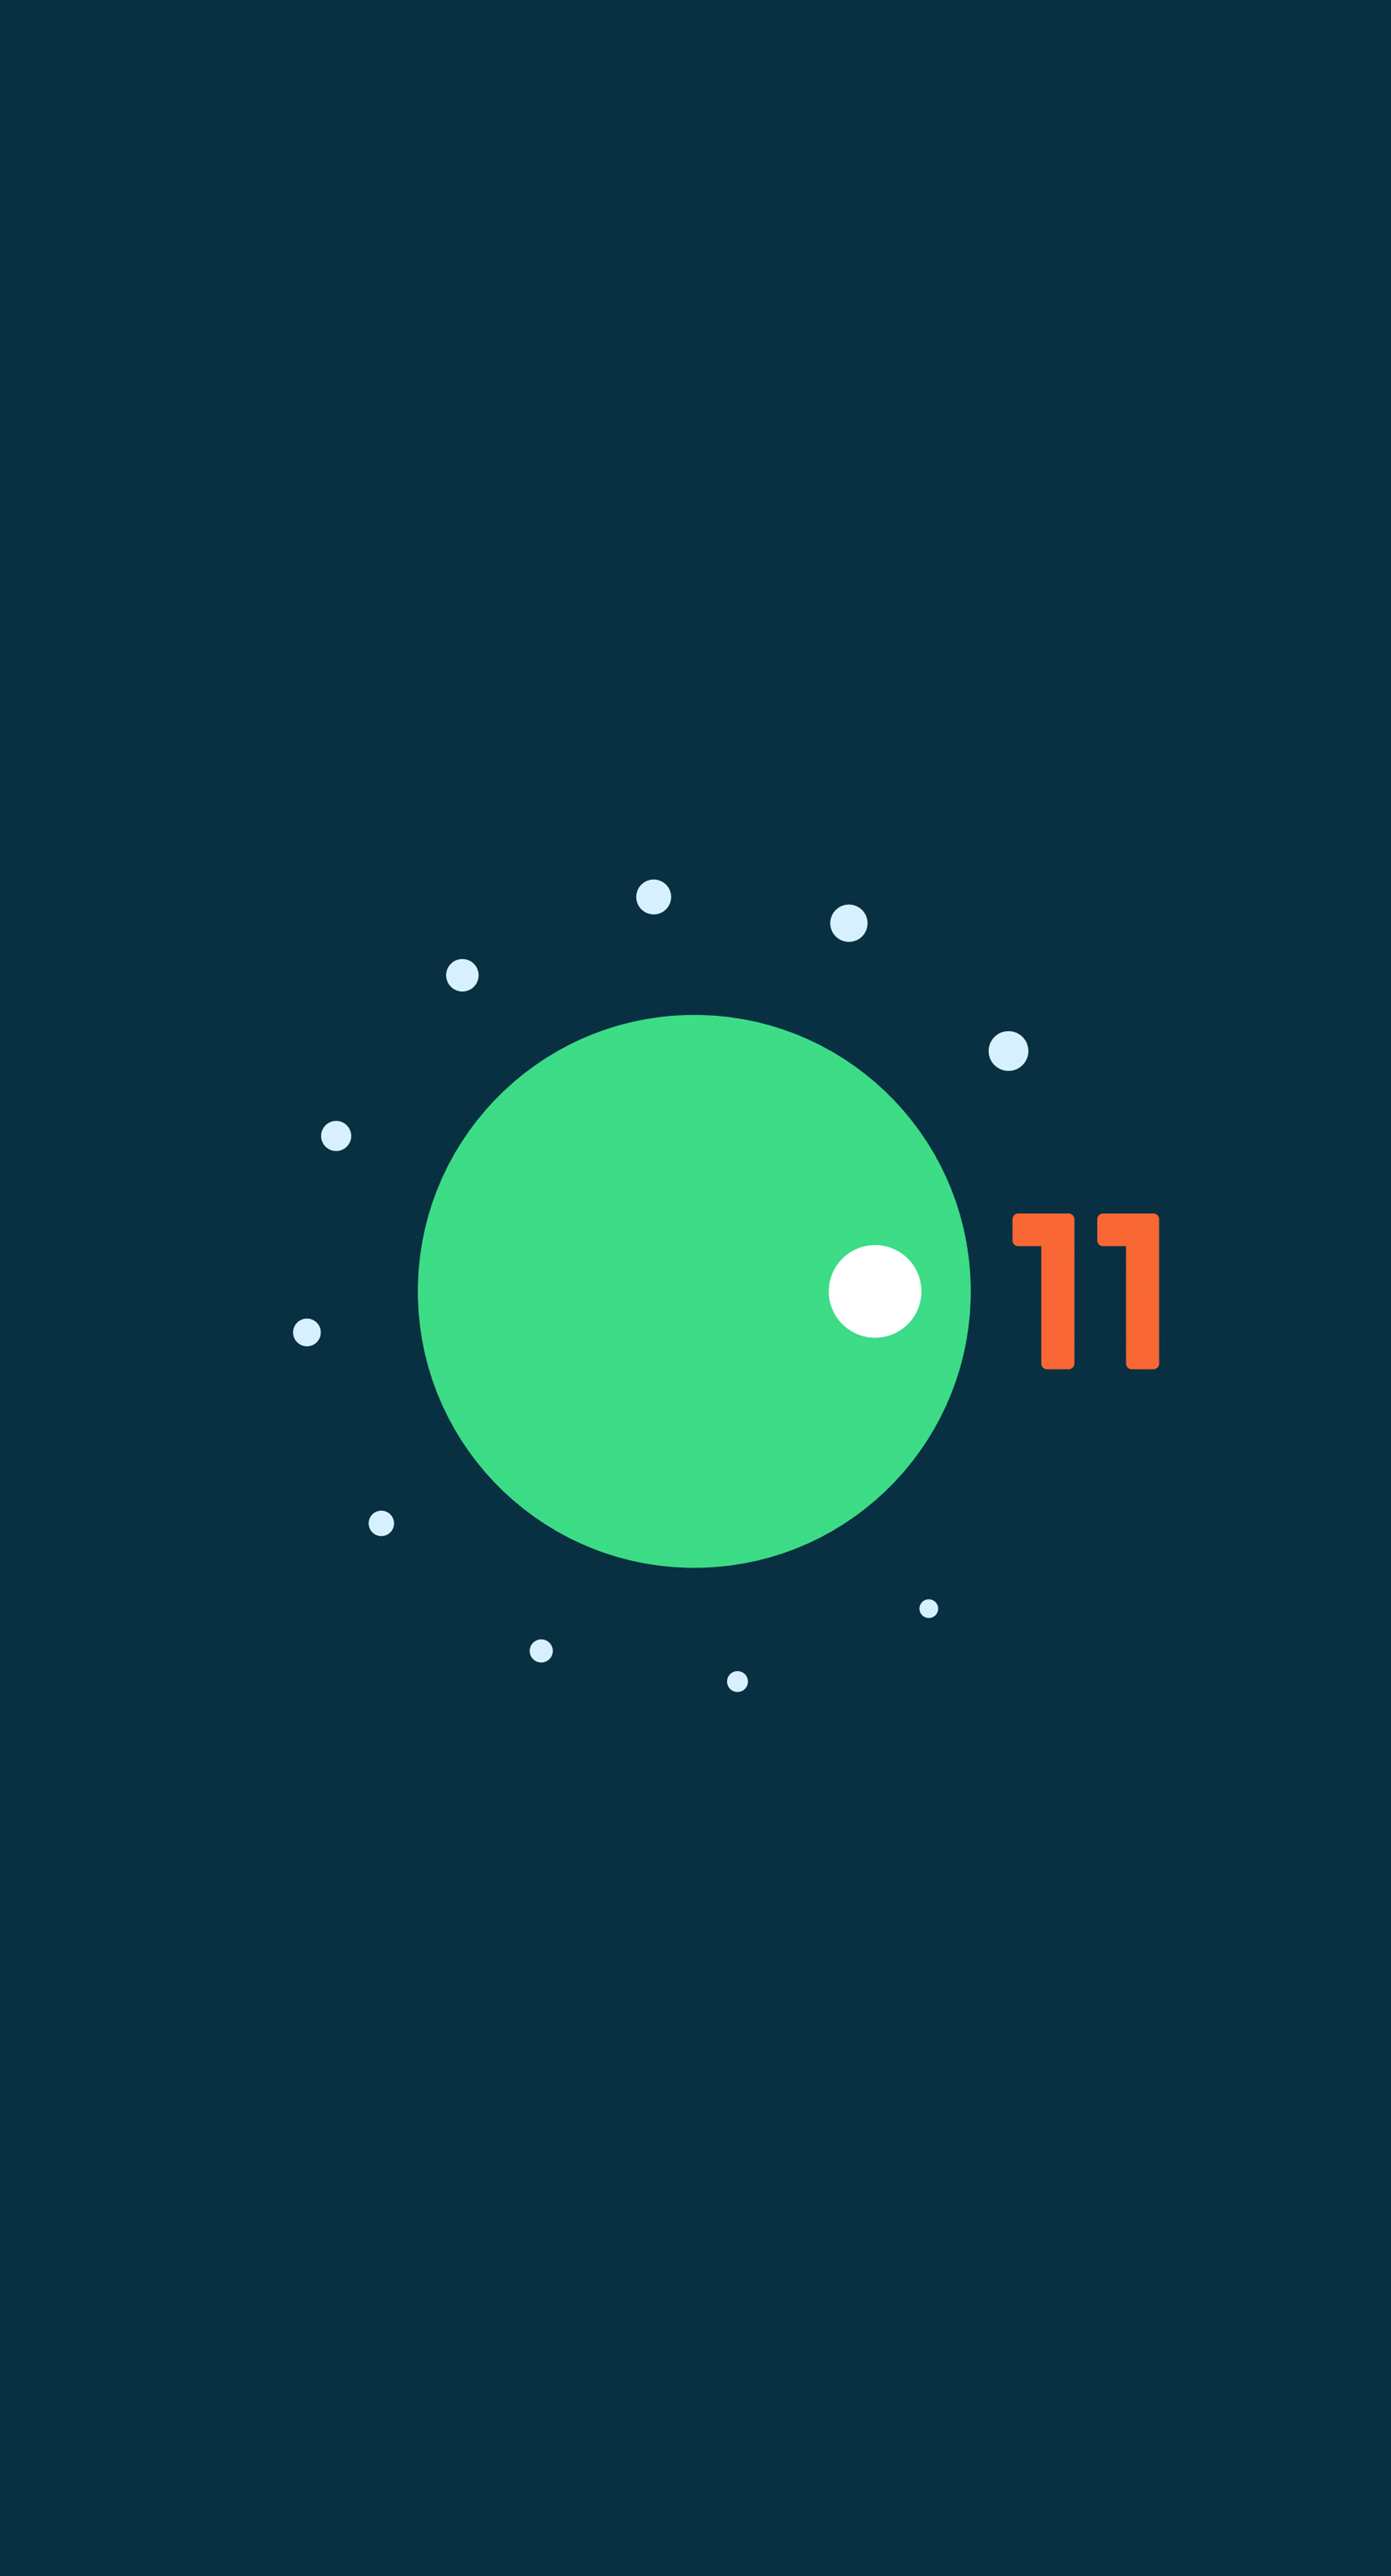 android-11-logo-navy.png